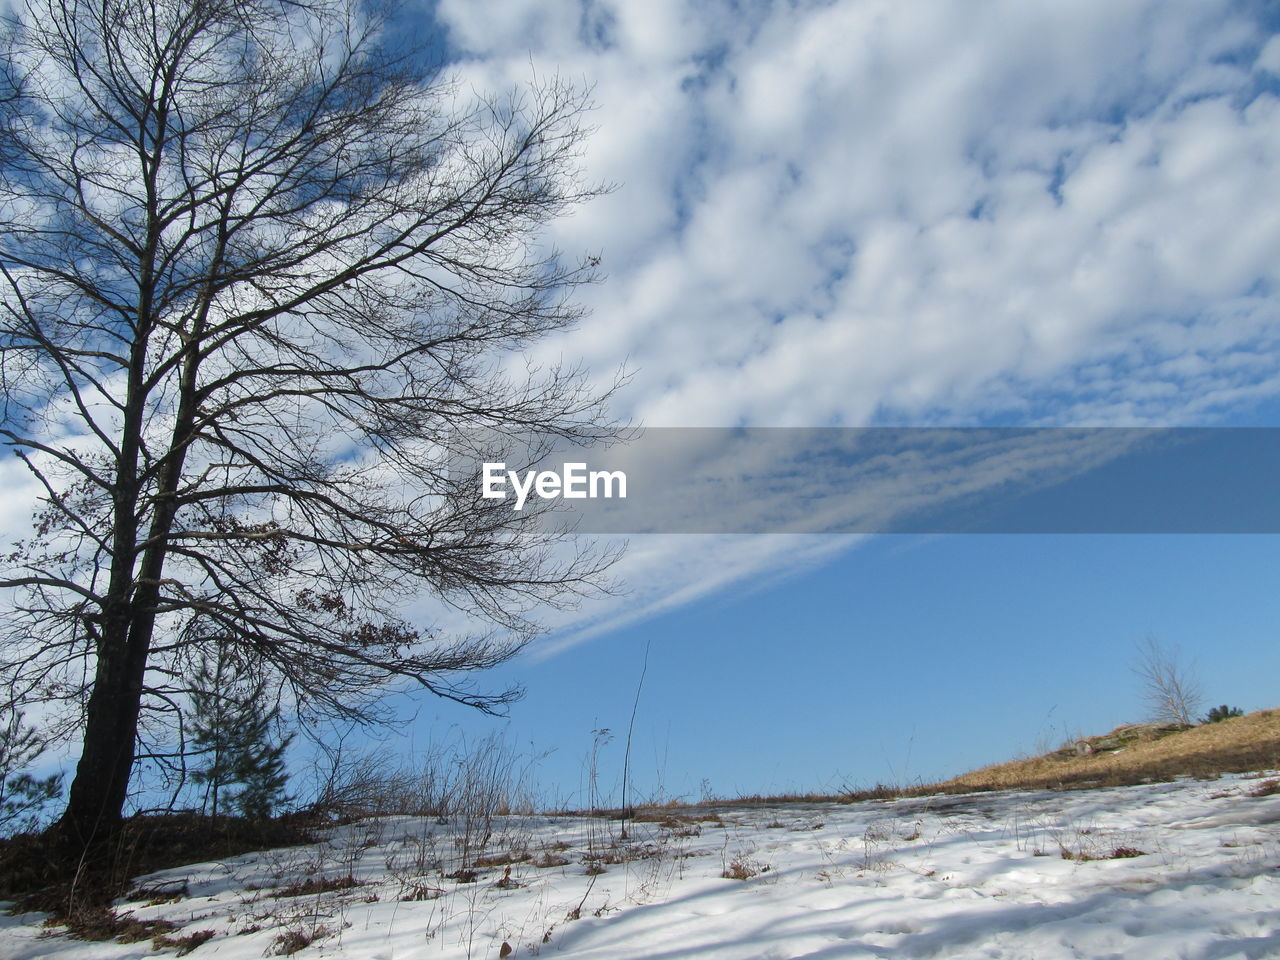 snow, cold temperature, winter, sky, bare tree, tree, cloud - sky, plant, tranquility, nature, scenics - nature, beauty in nature, no people, road, tranquil scene, transportation, day, non-urban scene, land, outdoors